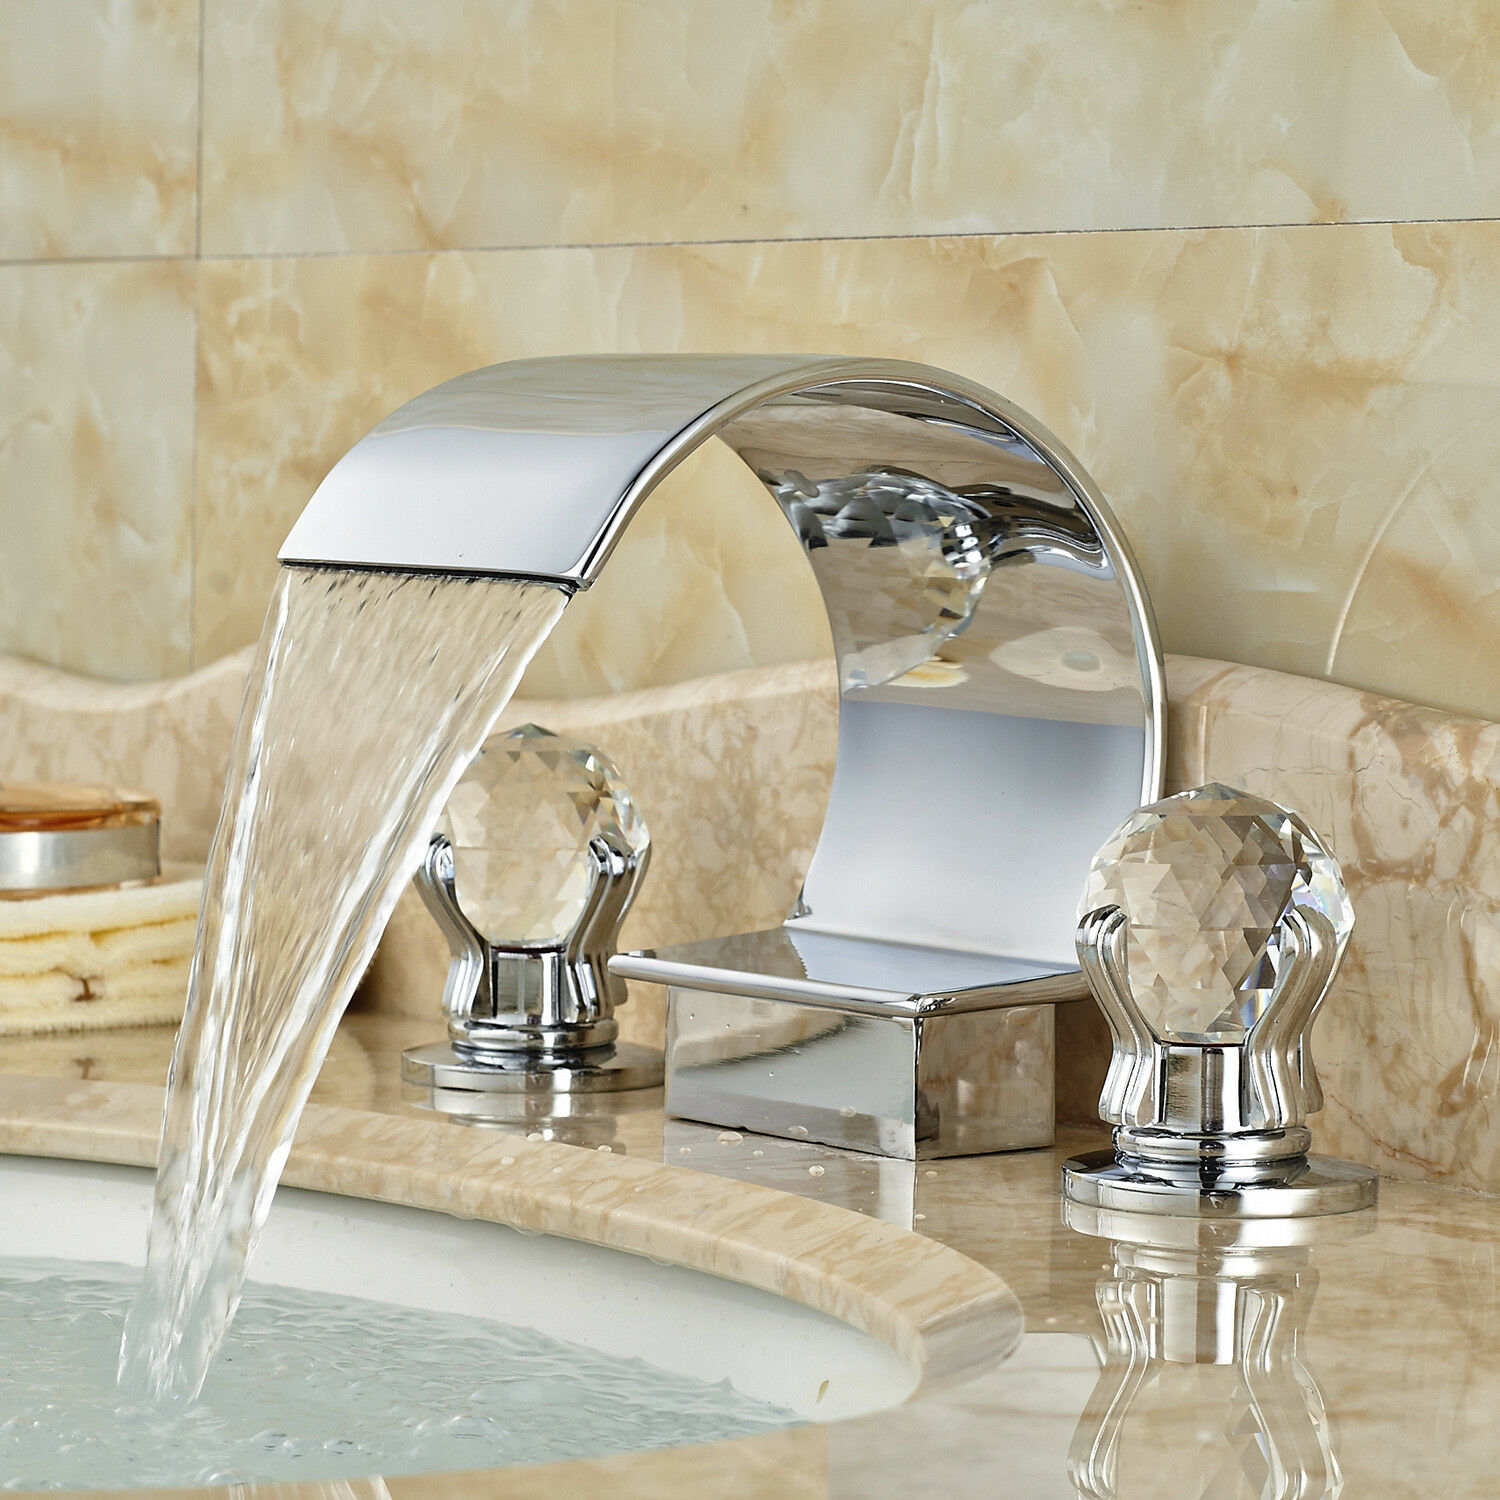 Chrome Widespread Home Faucets | eBay